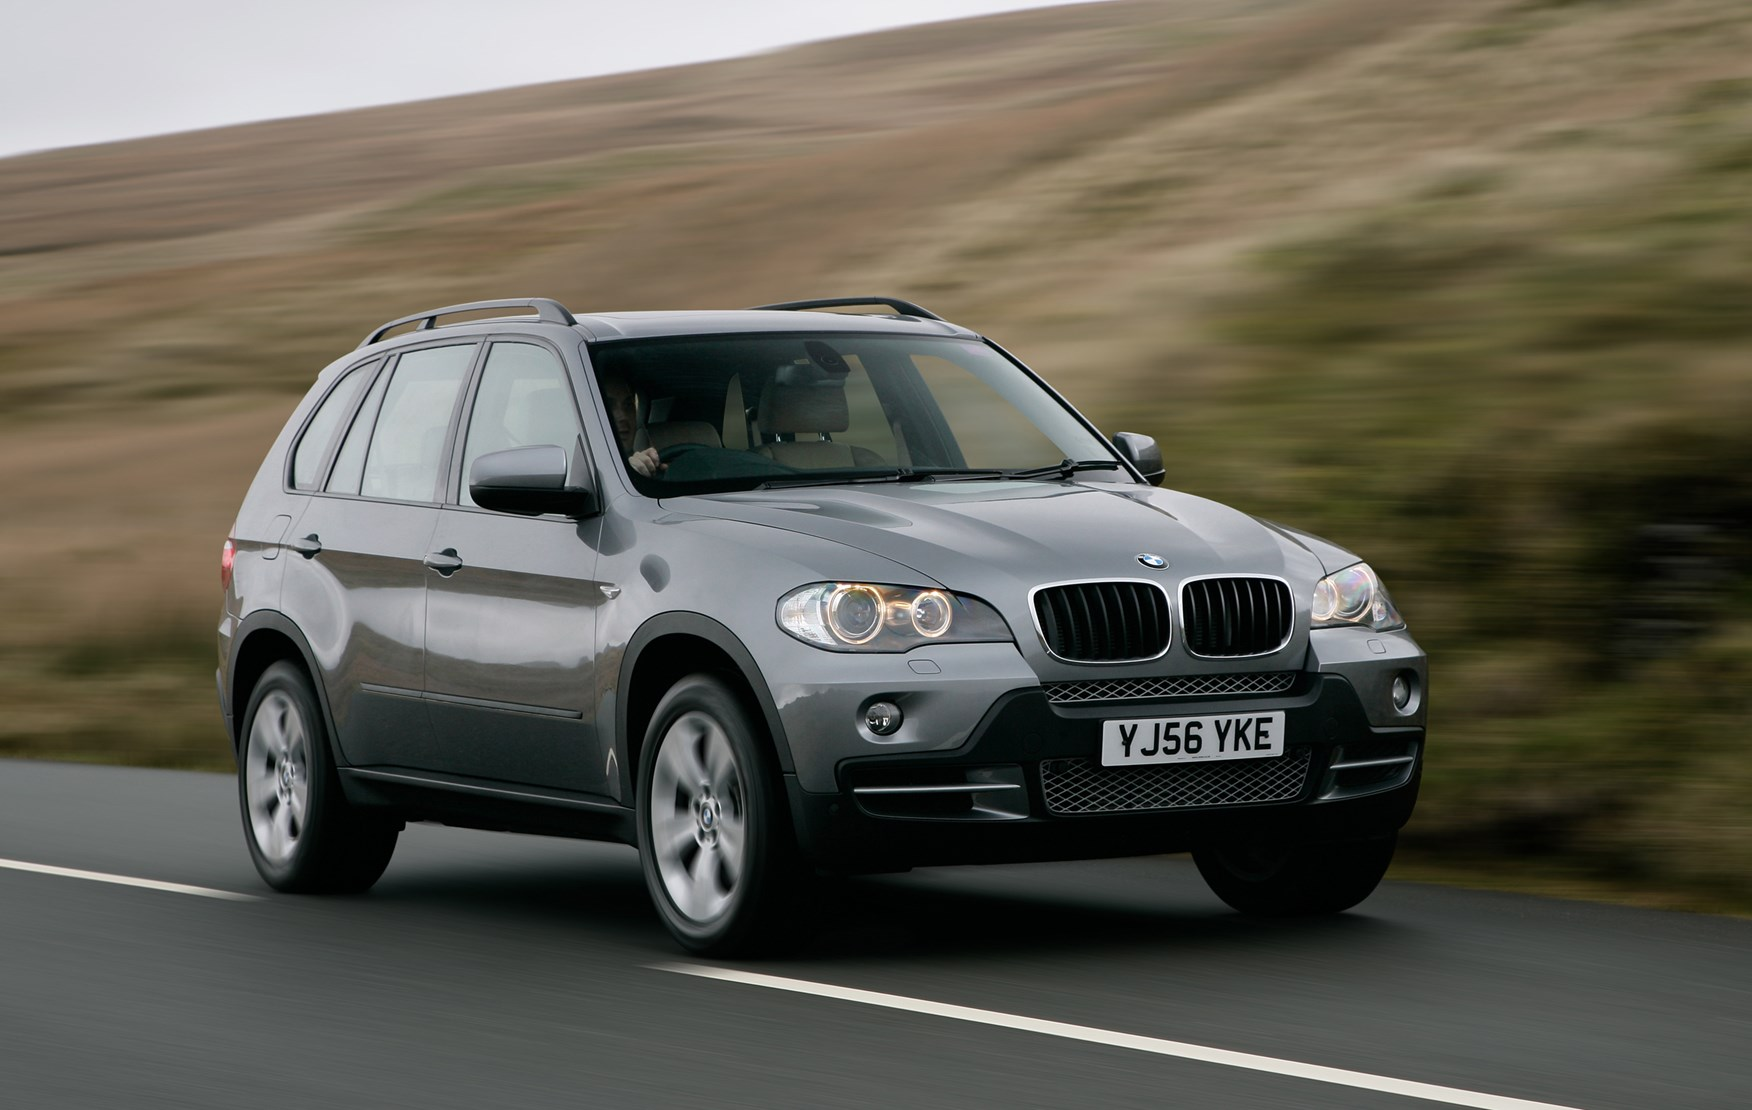 Bmw X5 Estate Review 2007 2013 Parkers Diagram Of Engine Bay